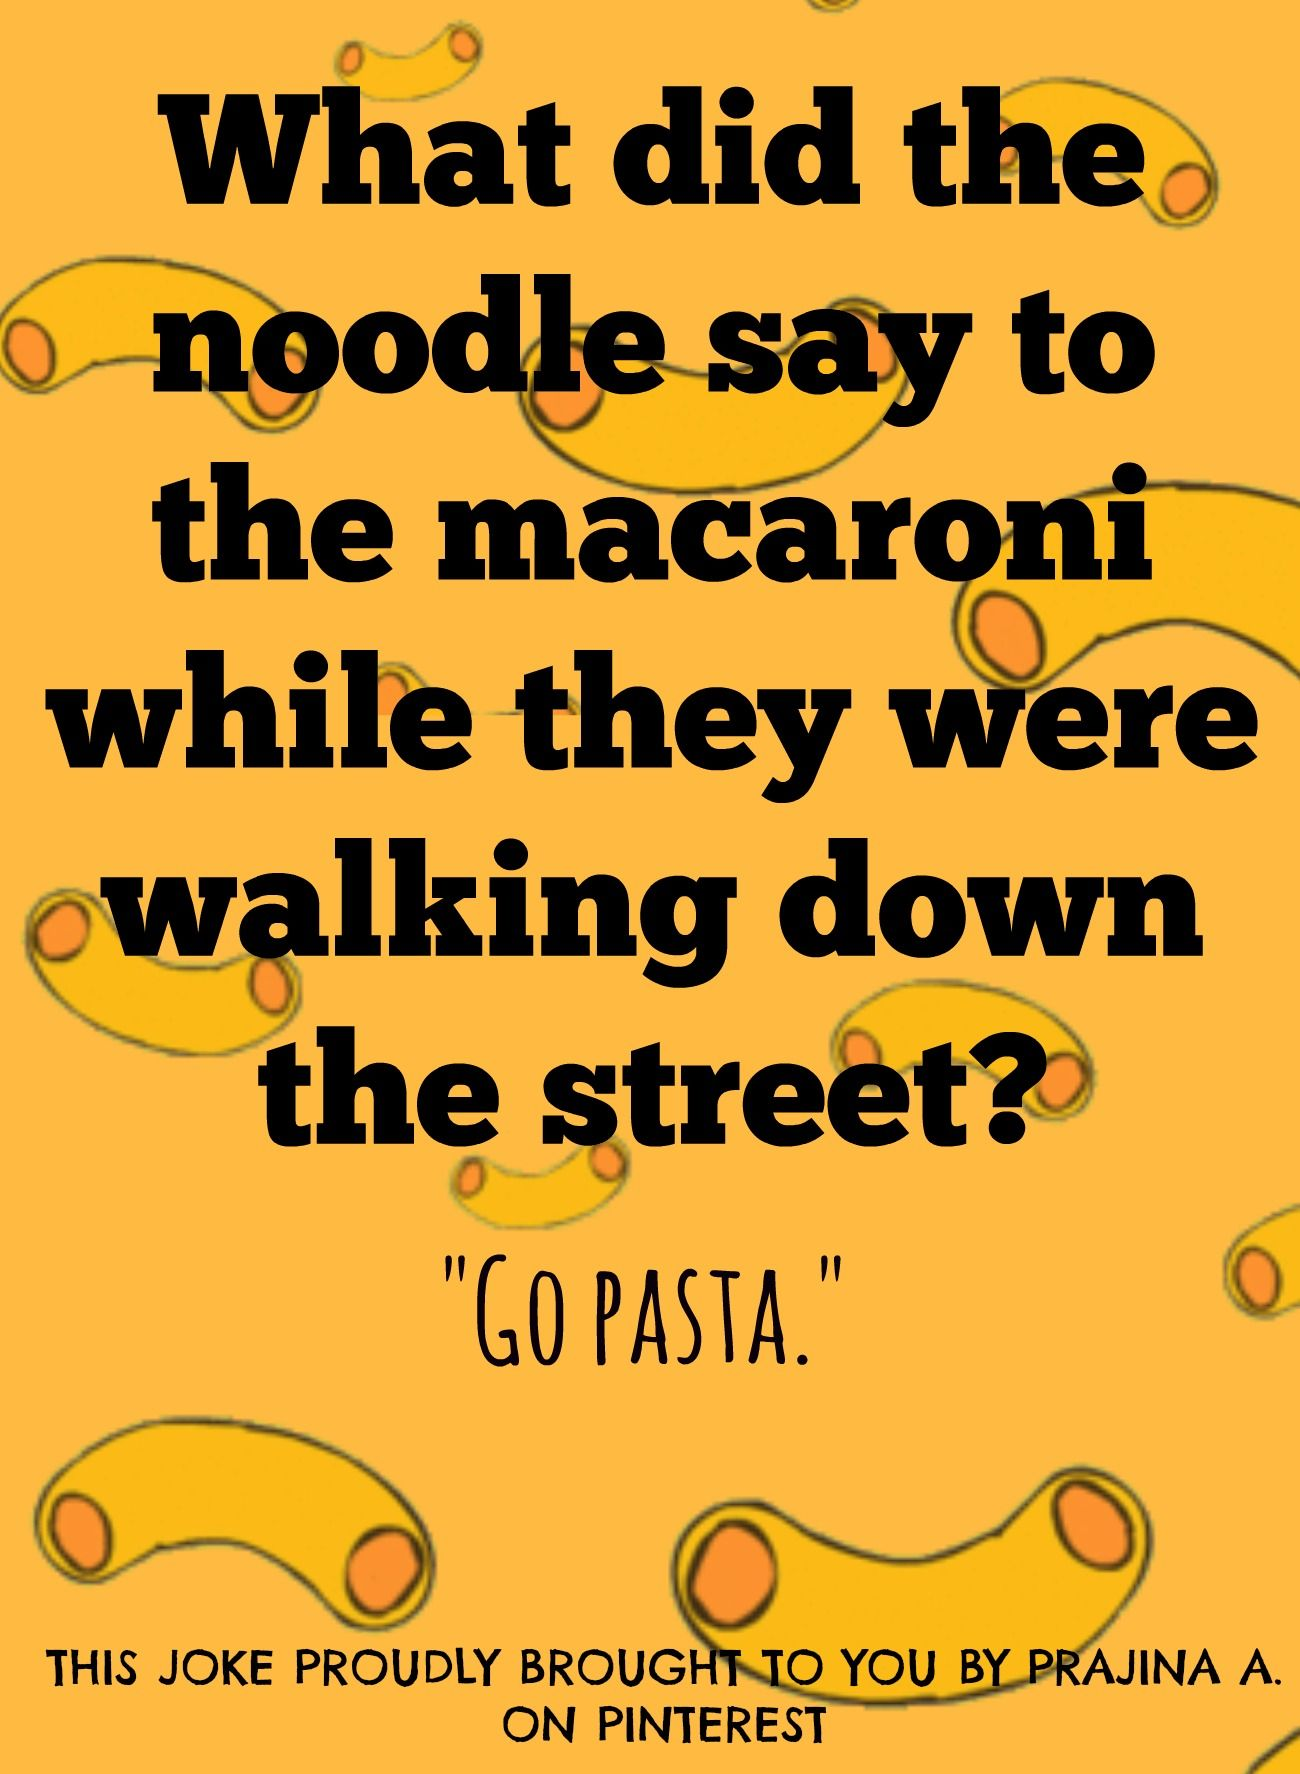 A joke. By me. Actually, I think I made this up while eating pasta ...